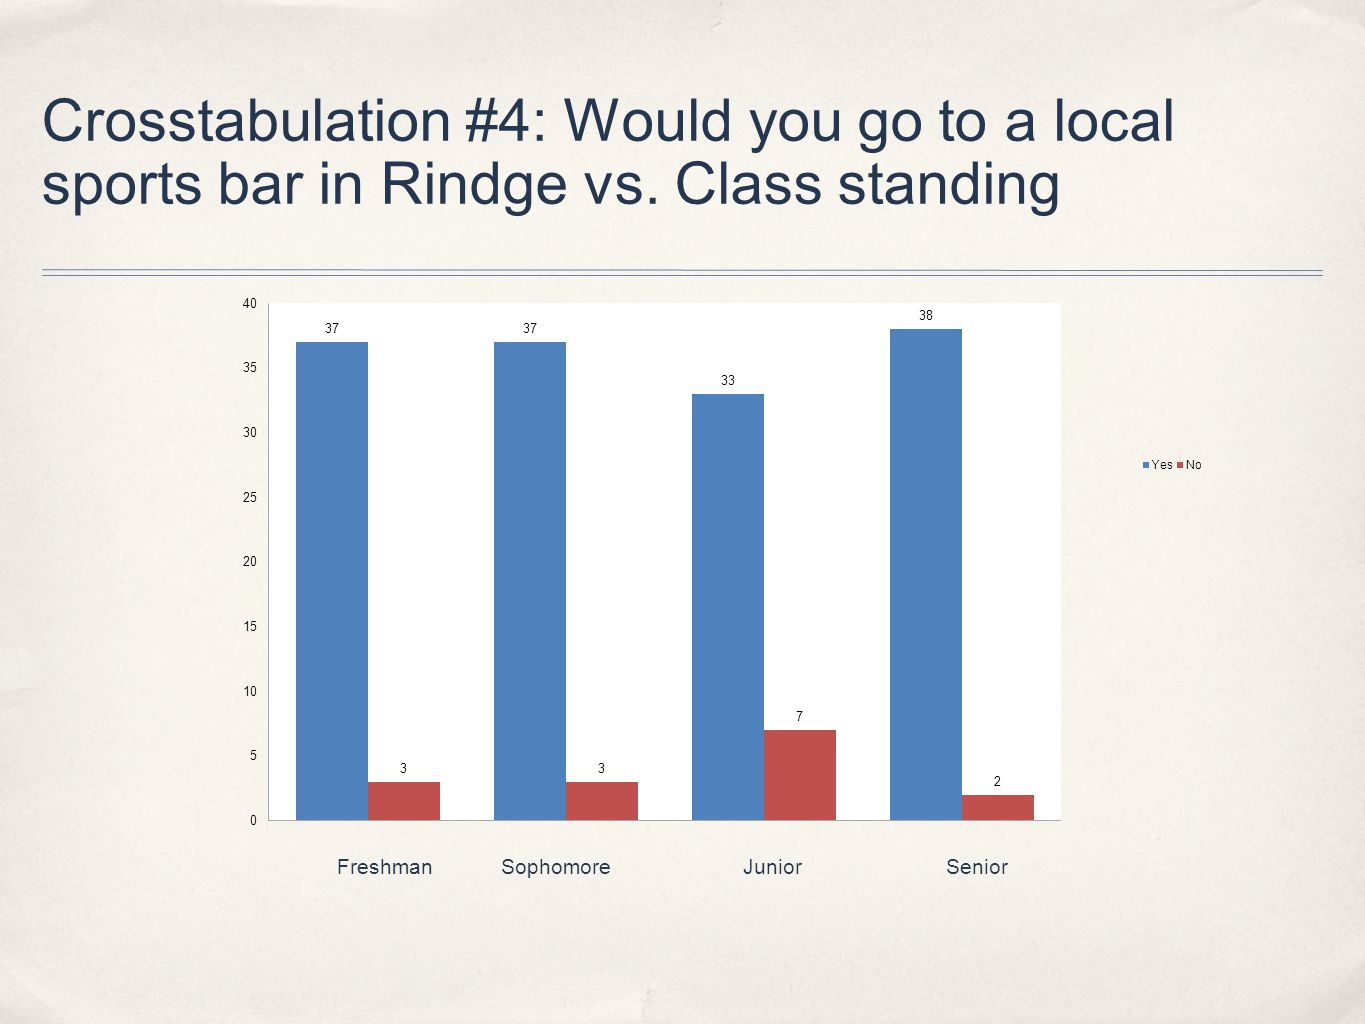 Crosstabulation #4: Would you go to a local sports bar in Rindge vs.